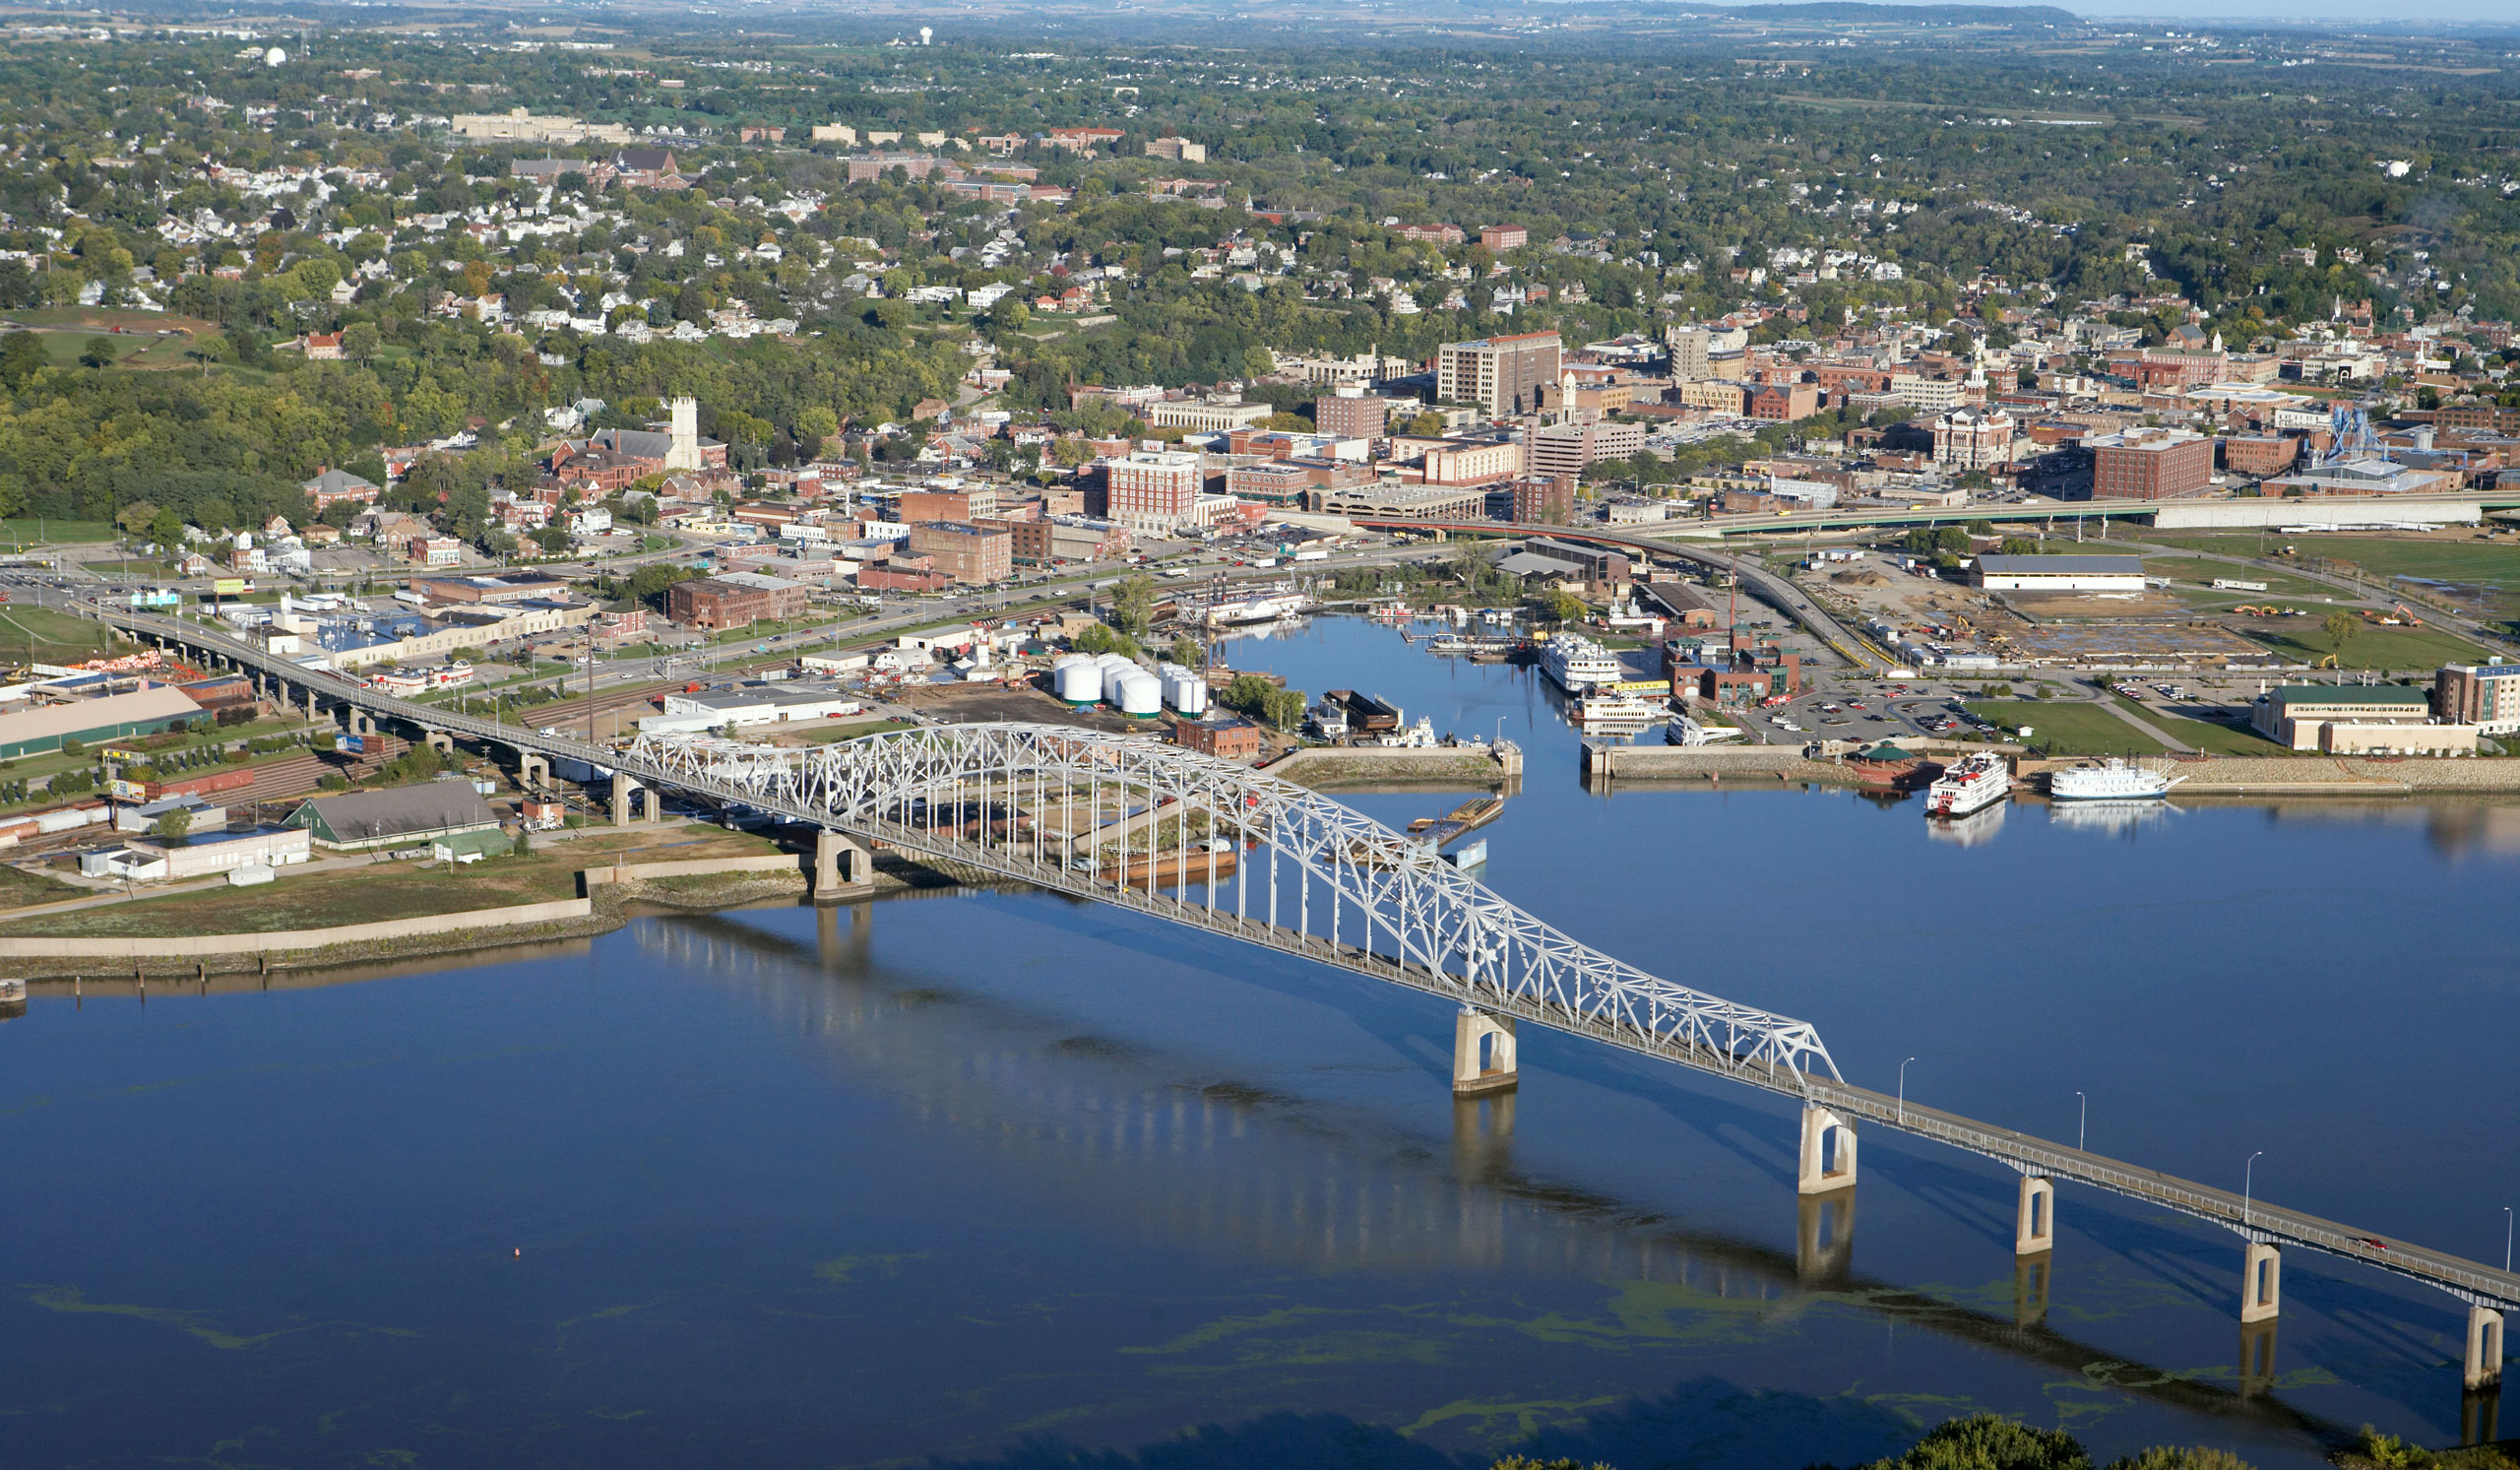 Aerial photograph of downtown Dubuque, Iowa, Mississippi River, Iowa/Illinois bridge